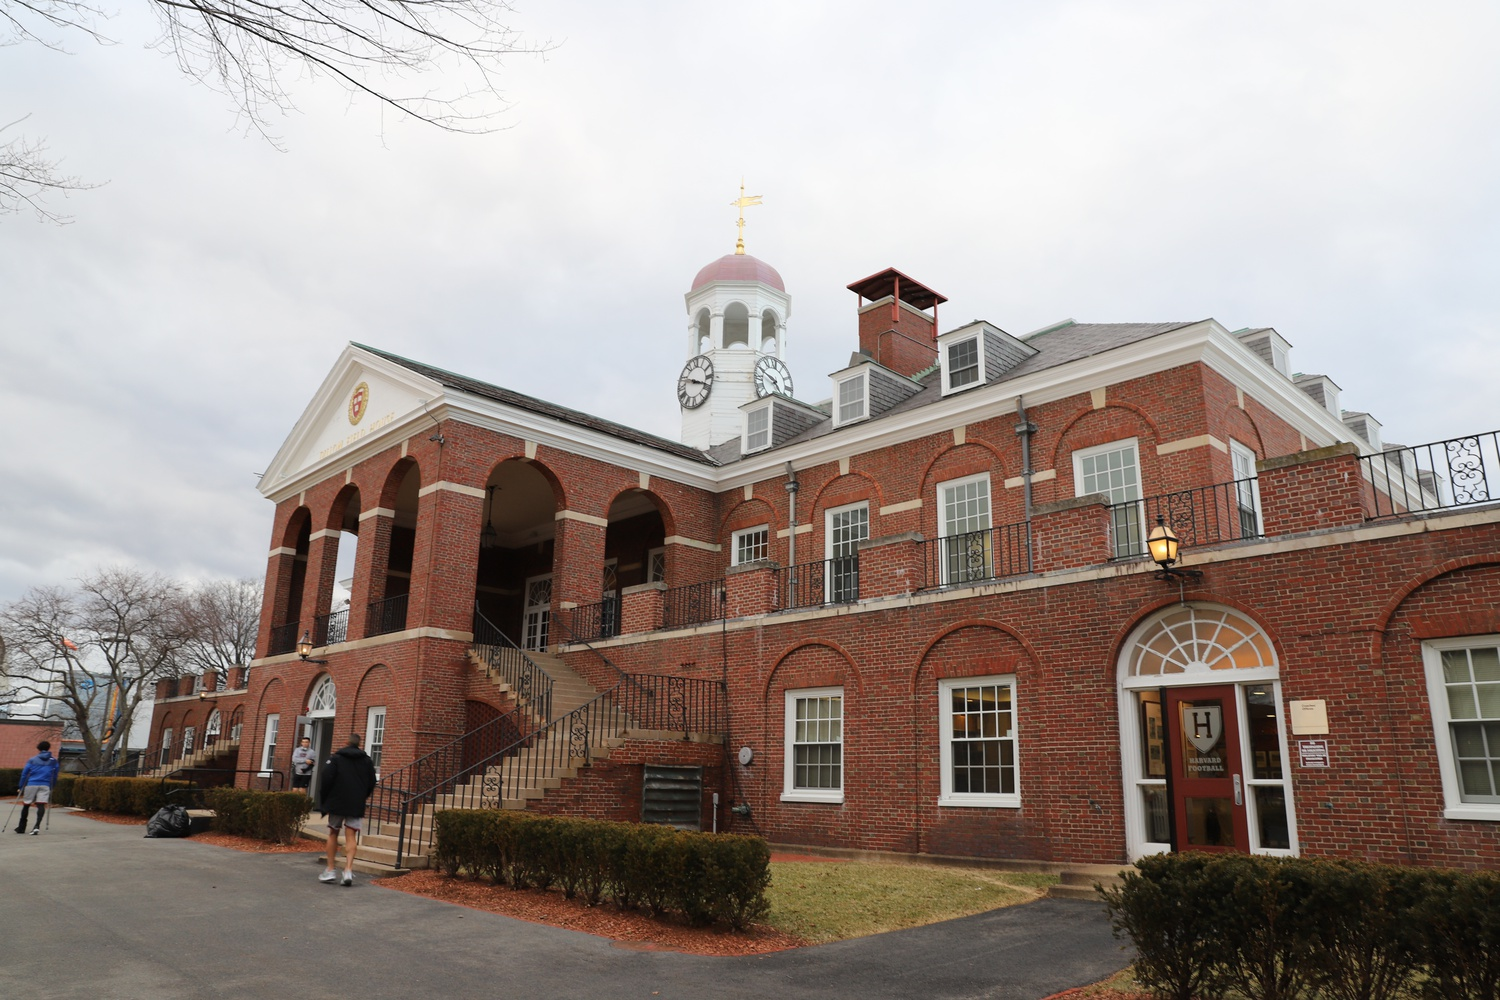 The Dillon Field House is home to the Harvard Varsity Equipment Room, Sports Medicine Facility, and a variety of locker rooms for varsity sports.